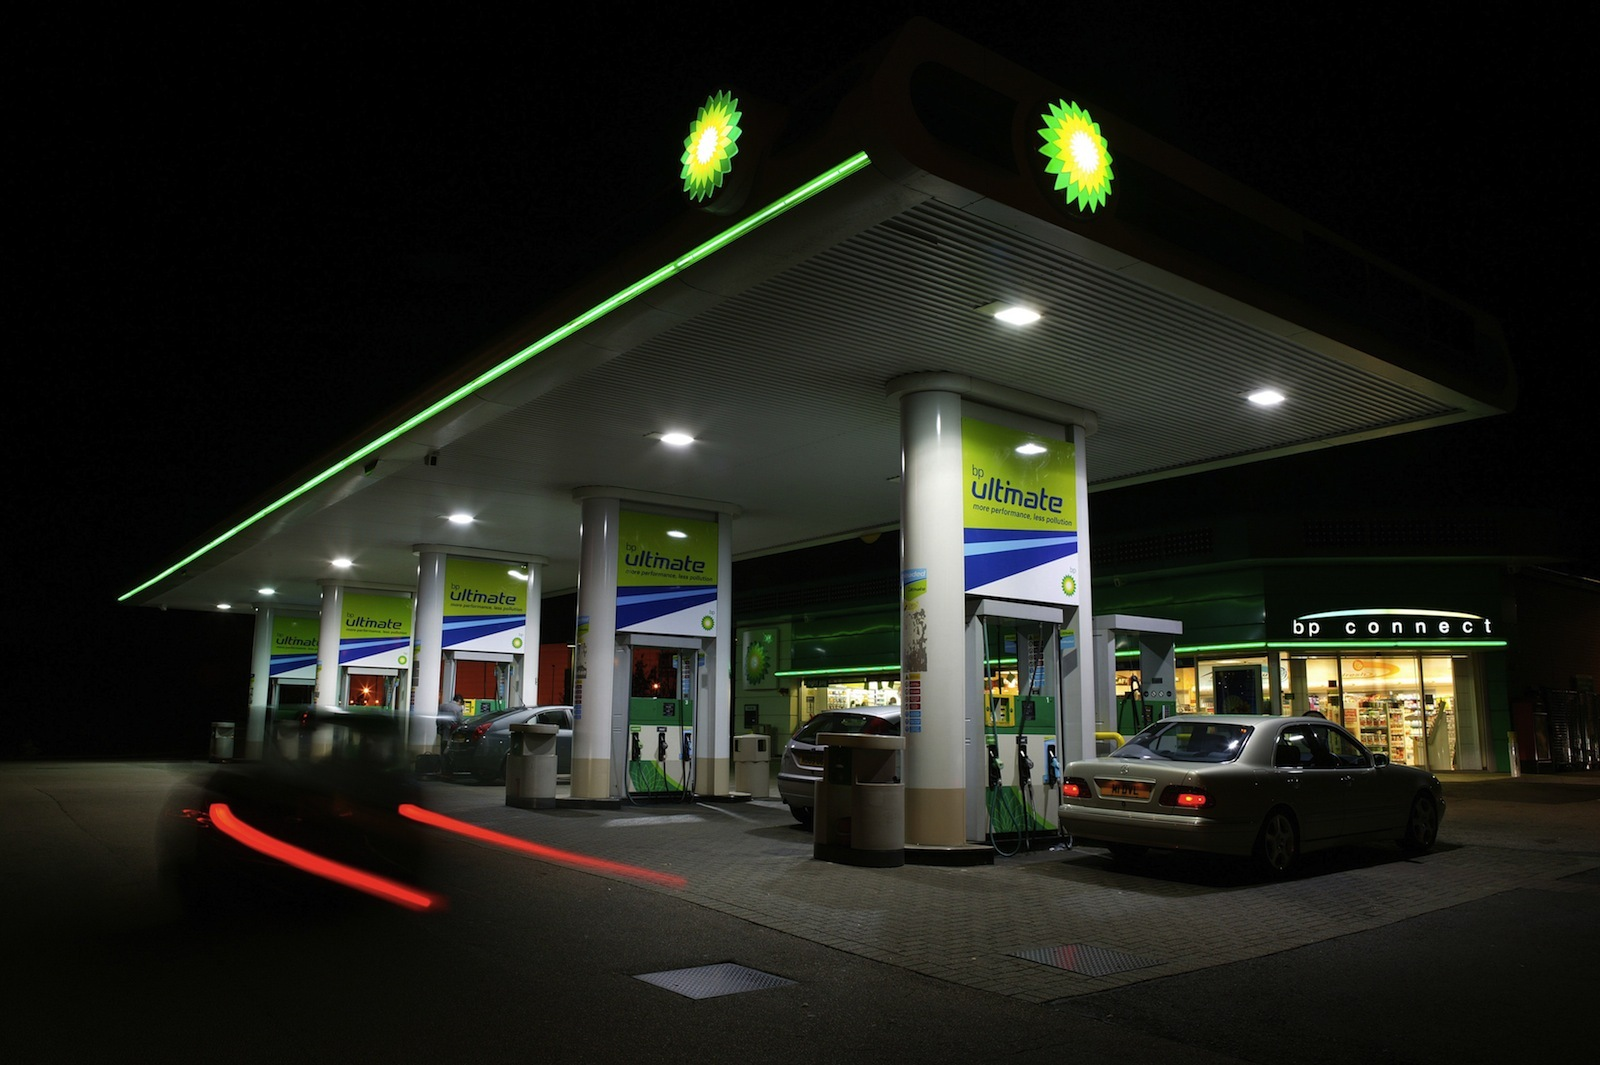 A BP gas station in the UK.